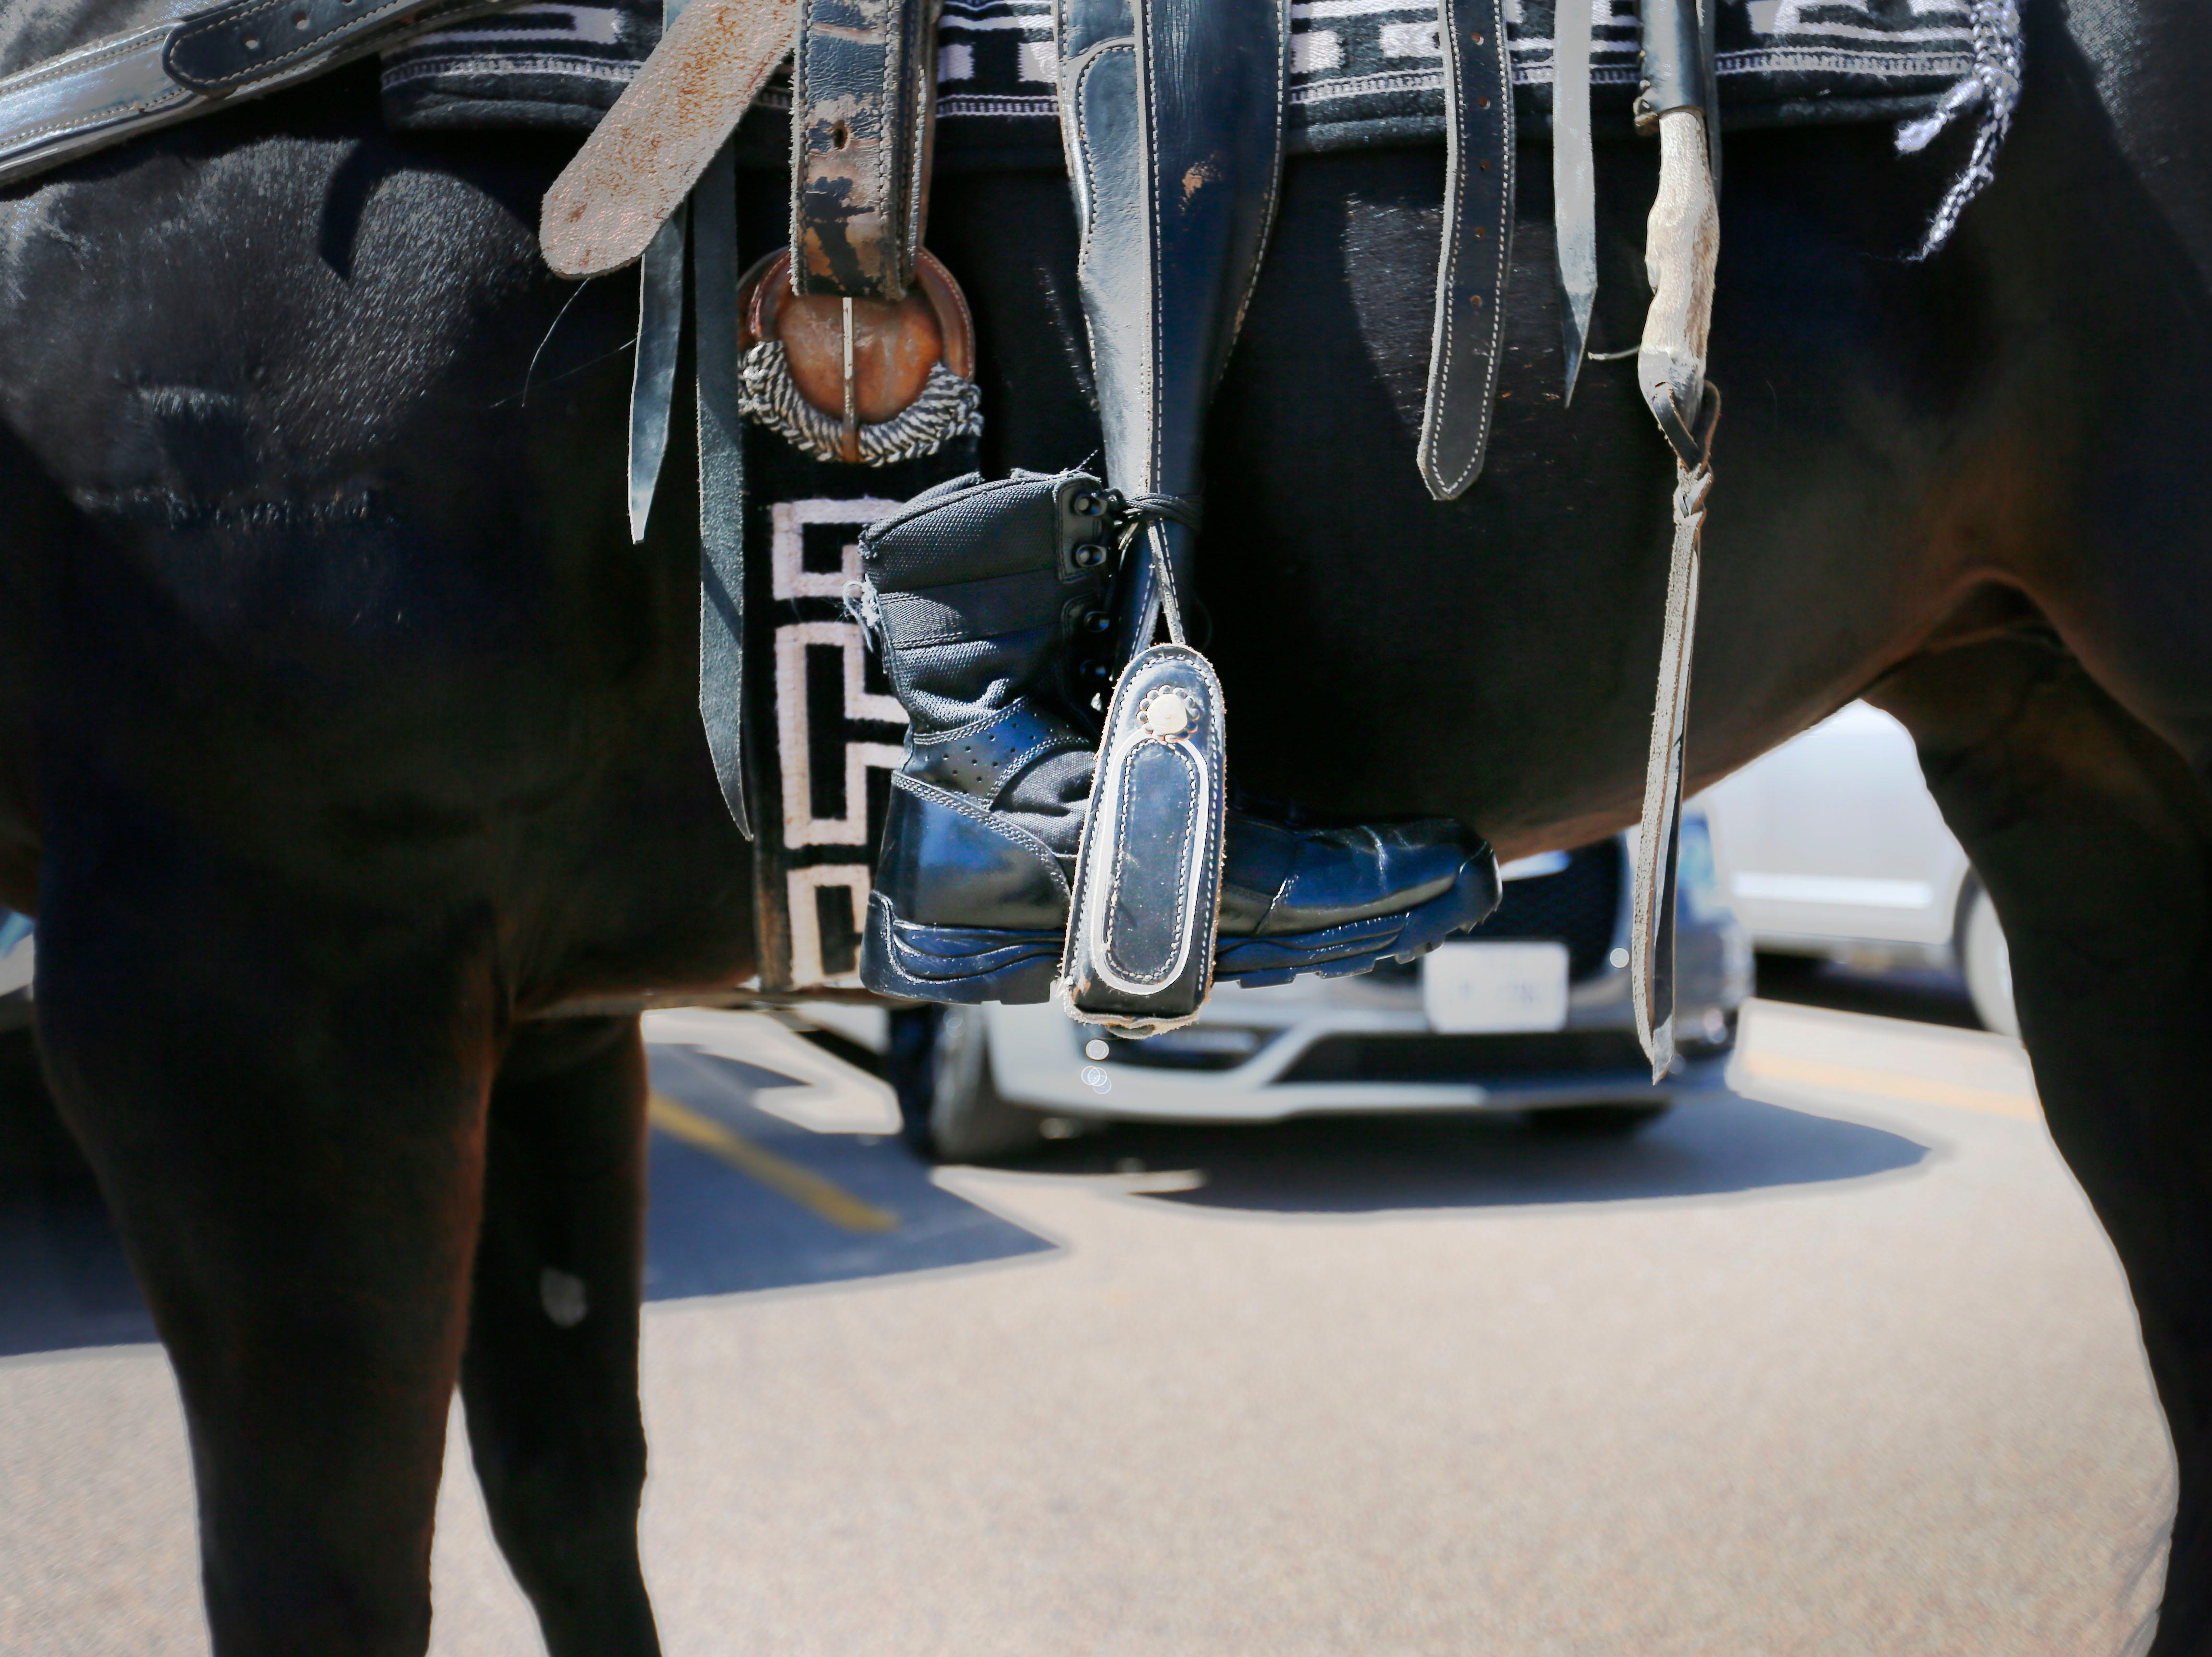 The Riderless horse wears a set of empty boots to honor the memory of fallen correctional officers Wednesday, May 8, at Rogelio Sanchez State Jail in El Paso.